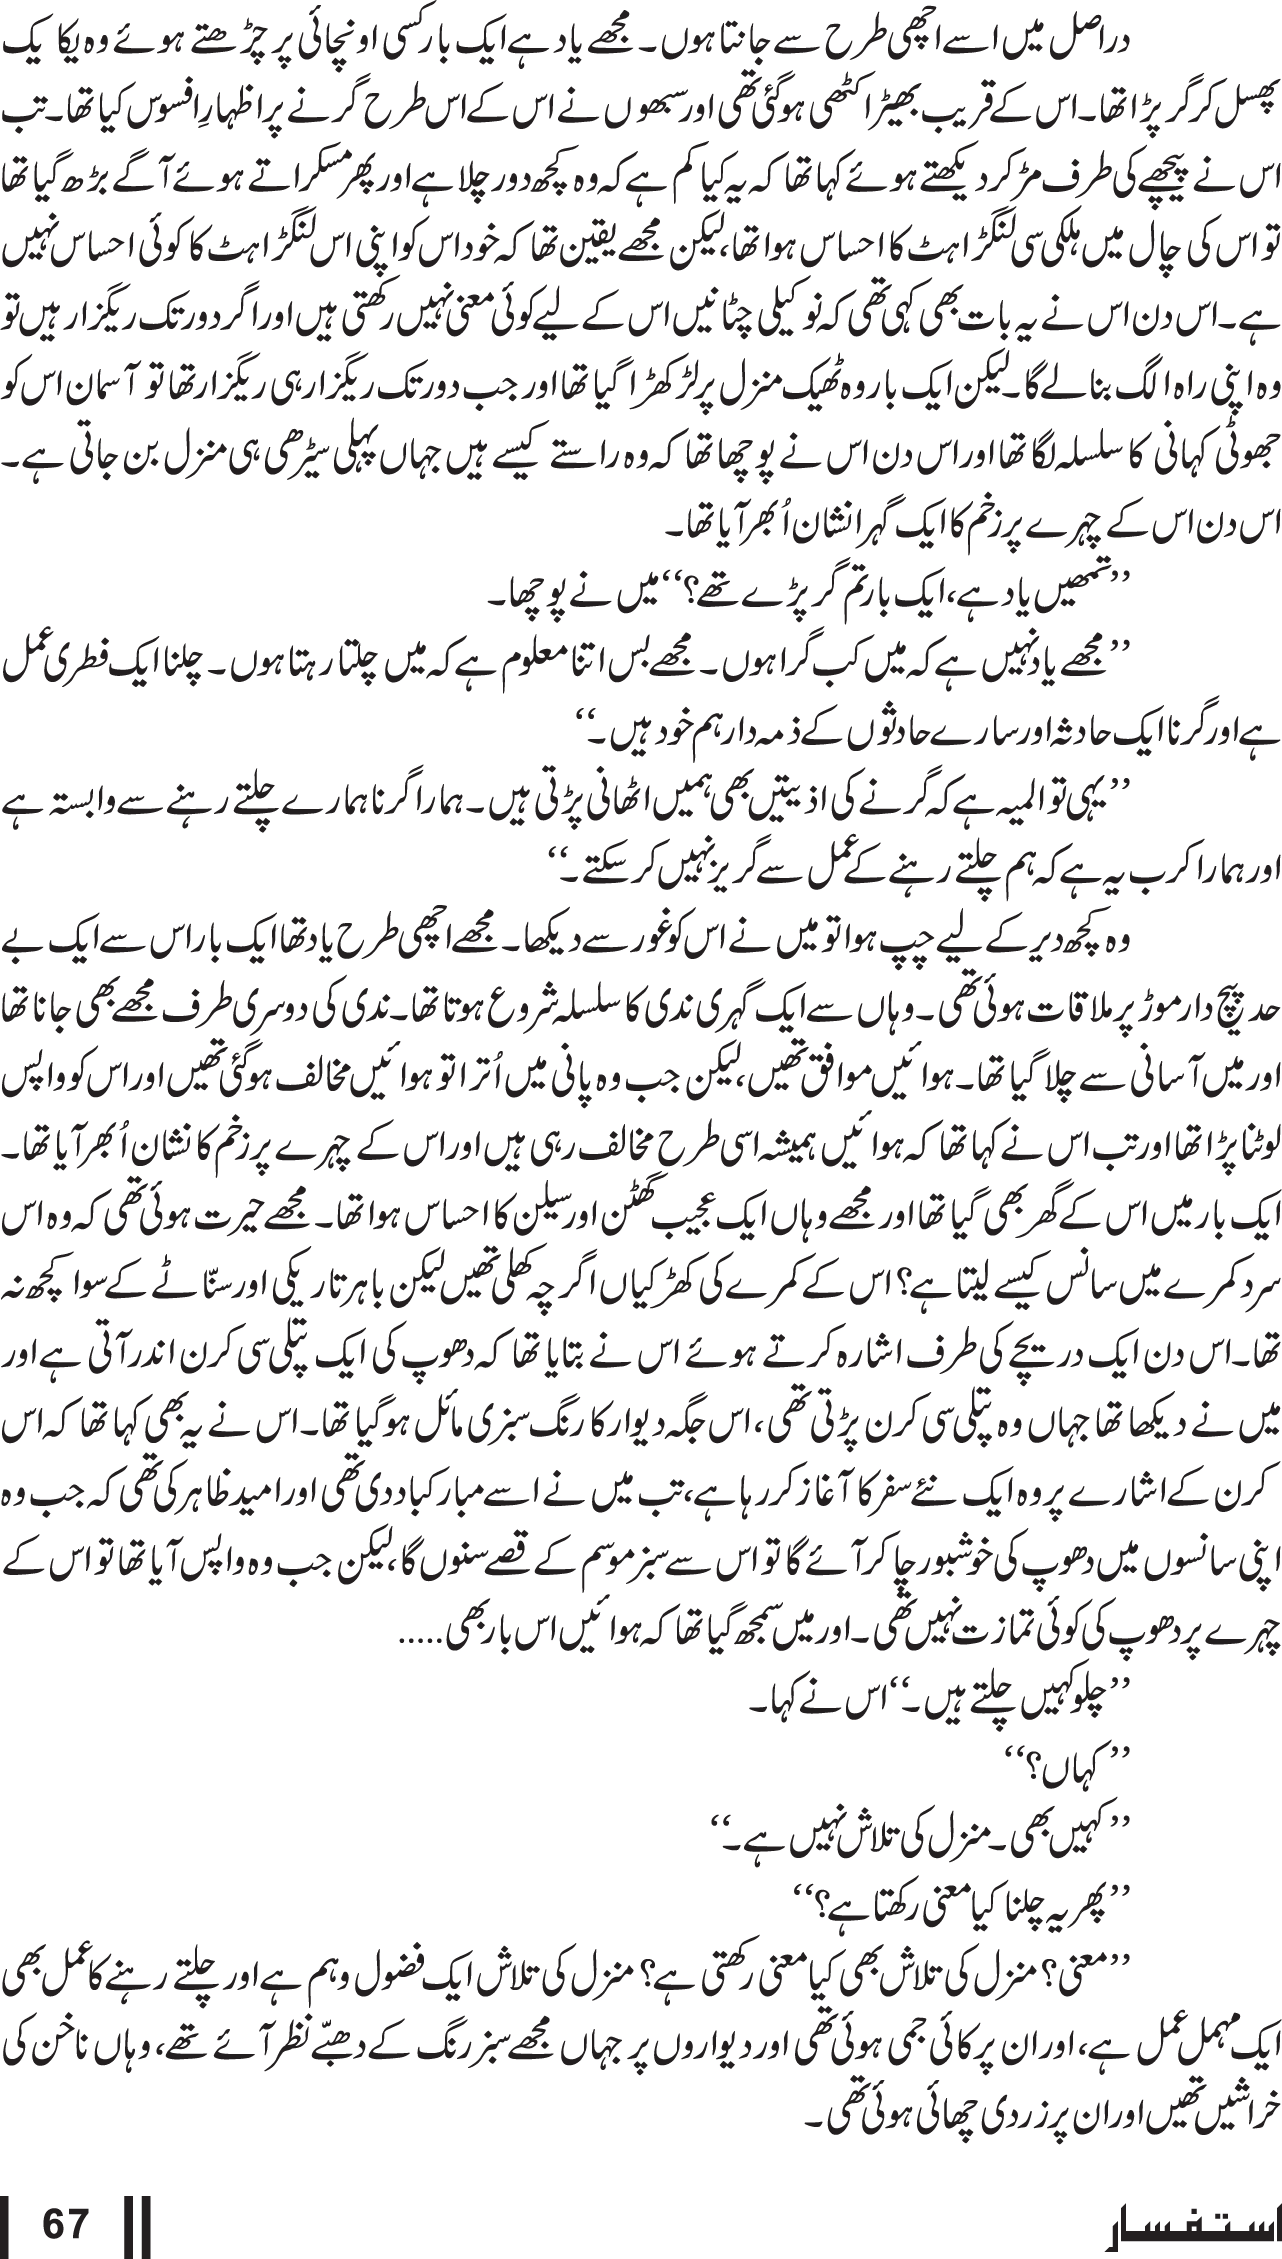 Second_Issue-67